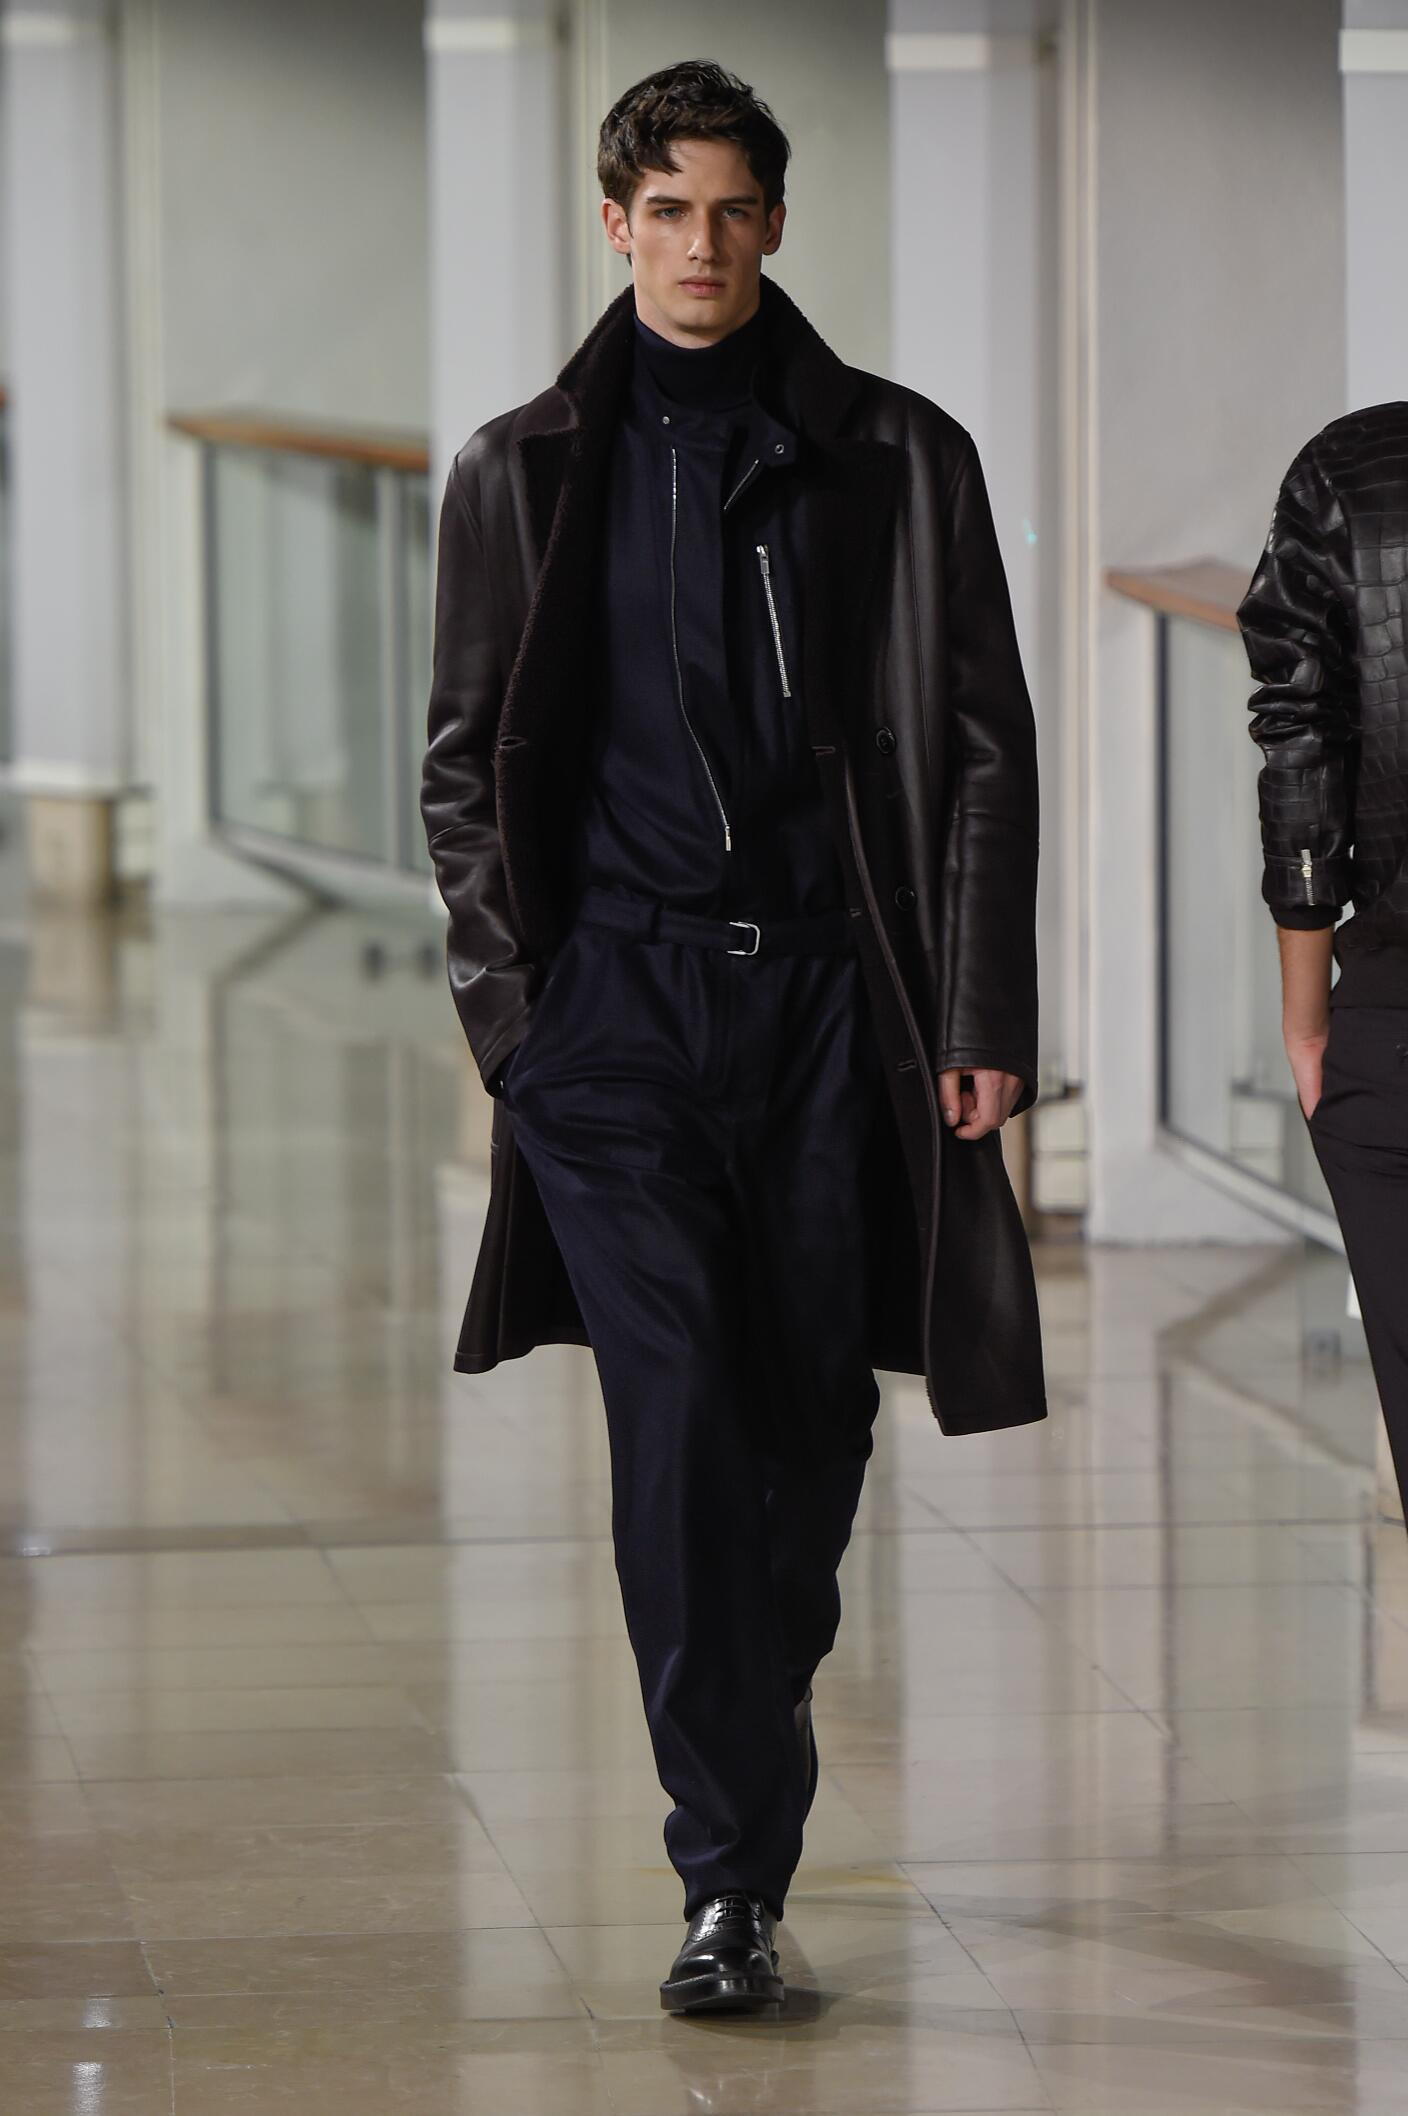 Catwalk Hermès Fall Winter 2015 16 Men's Collection Paris Fashion Week